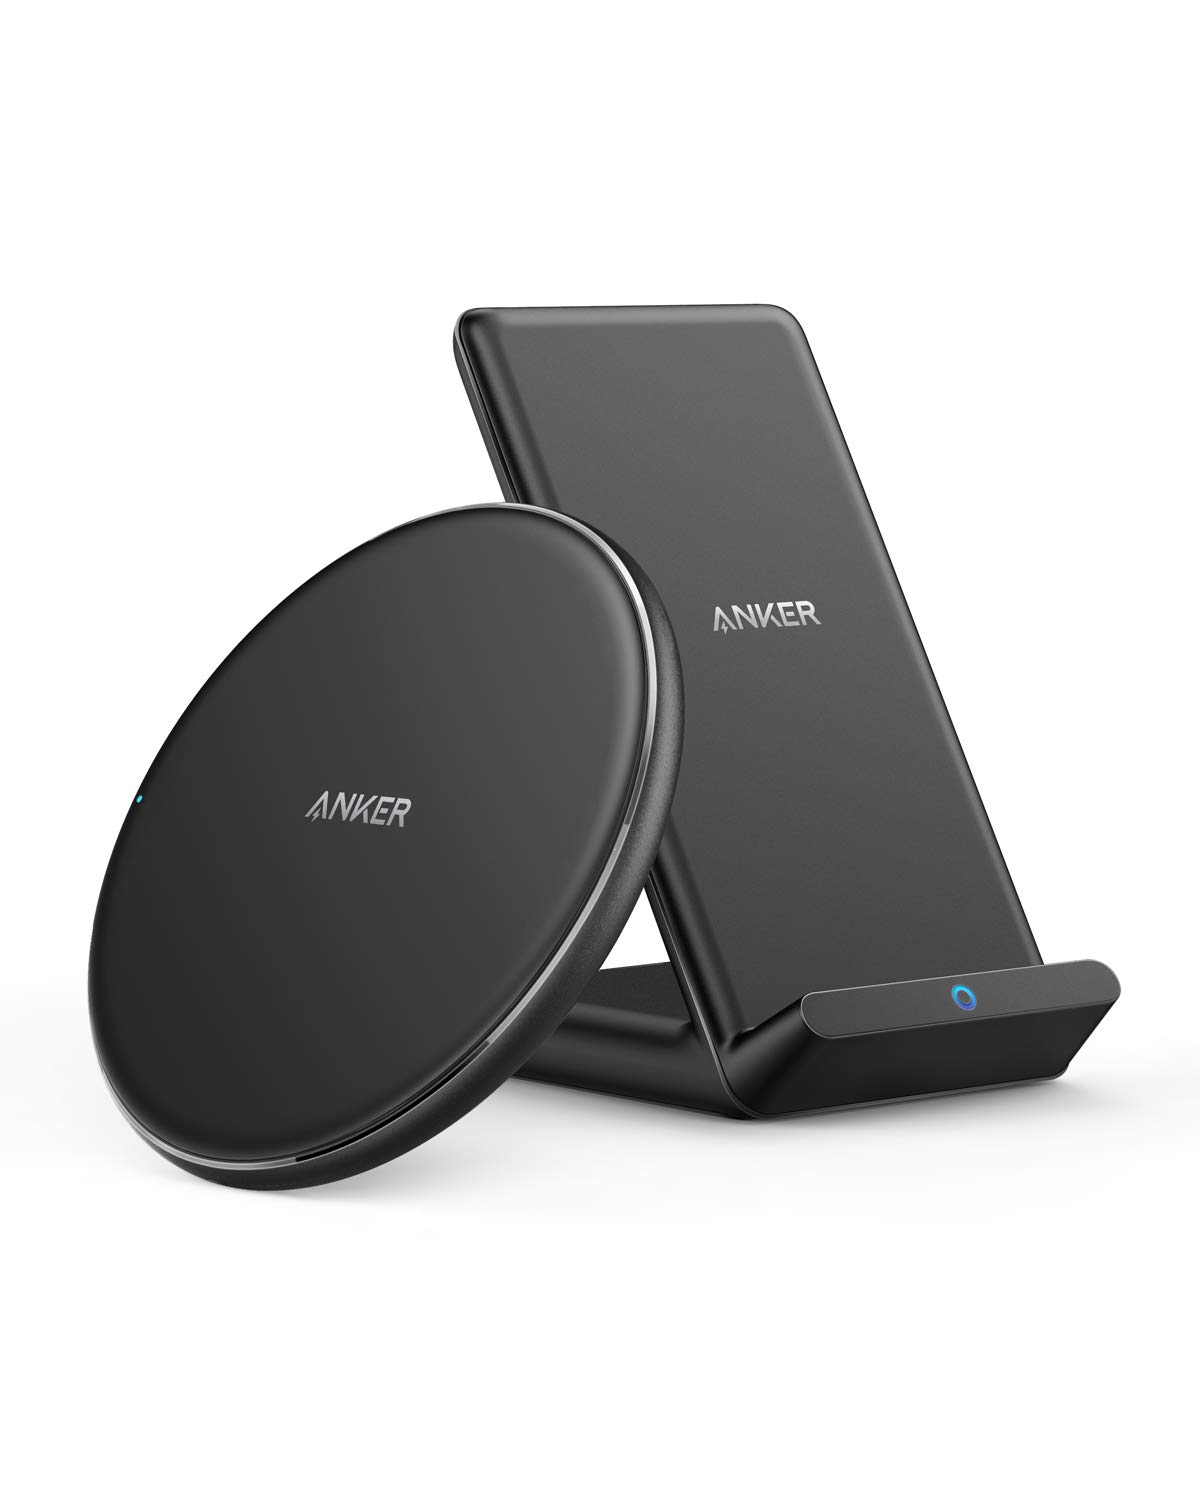 Anker Wireless Chargers Bundle, PowerWave Pad & Stand Upgraded, Qi-Certified 7.5W for iPhone Xs Max XR XS X 8/8 Plus, 10W Fast Charging Samsung Galaxy S10 S9 S8, Note 10 Note 9 (No AC Adapter)